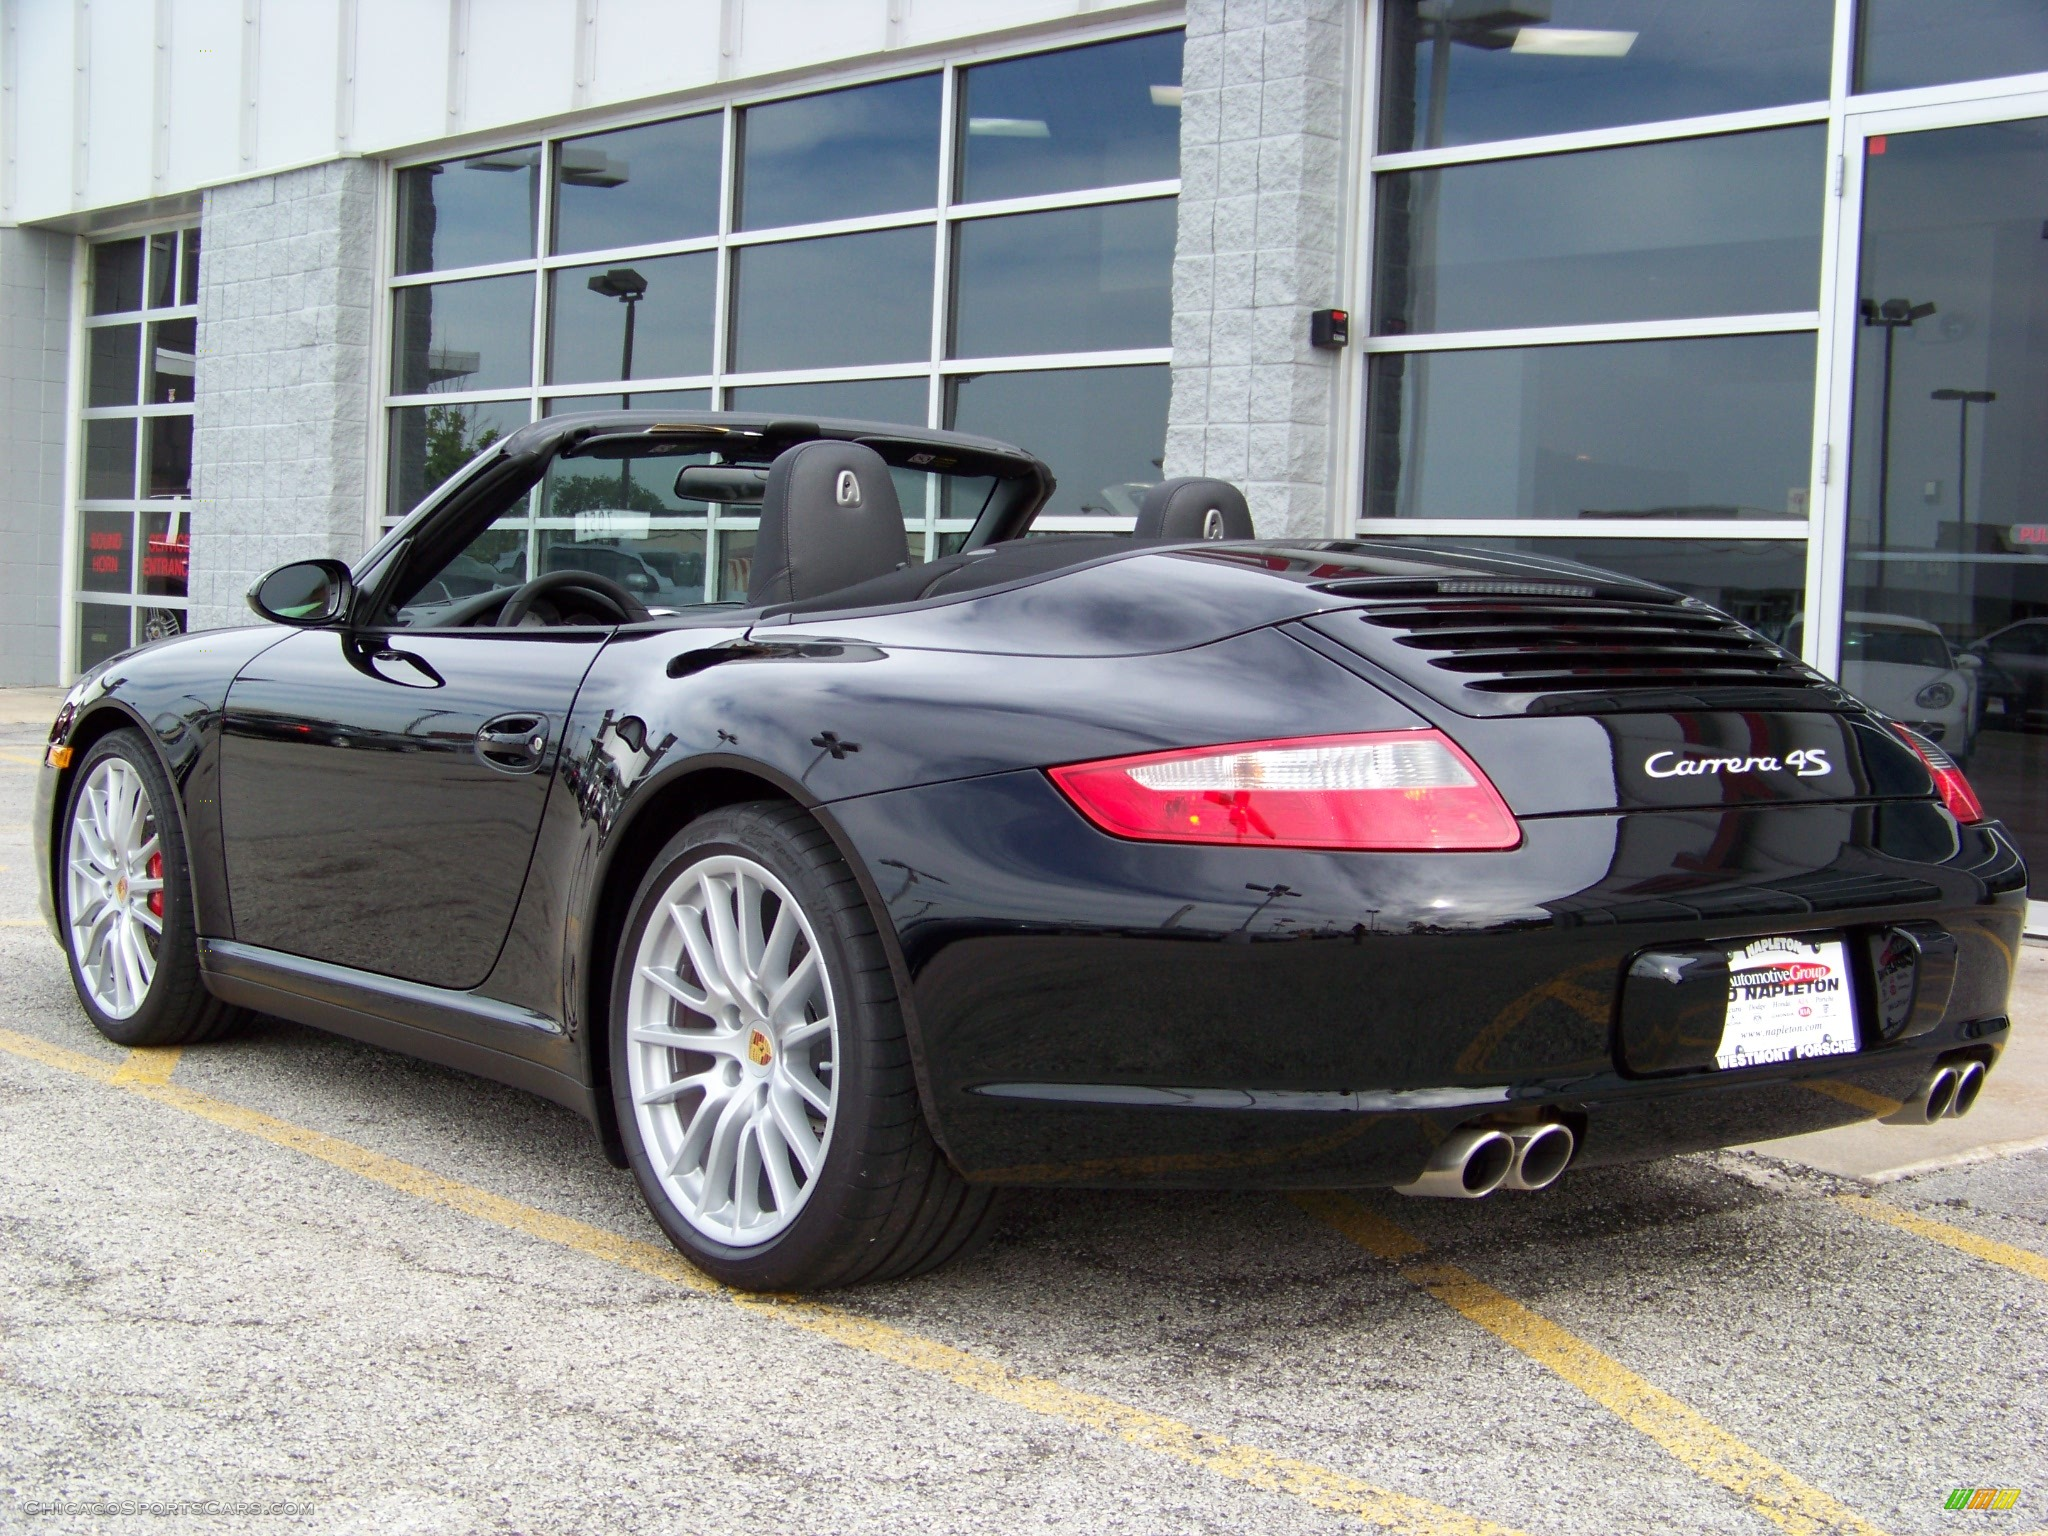 2008 porsche 911 carrera 4s cabriolet in black photo 8. Black Bedroom Furniture Sets. Home Design Ideas